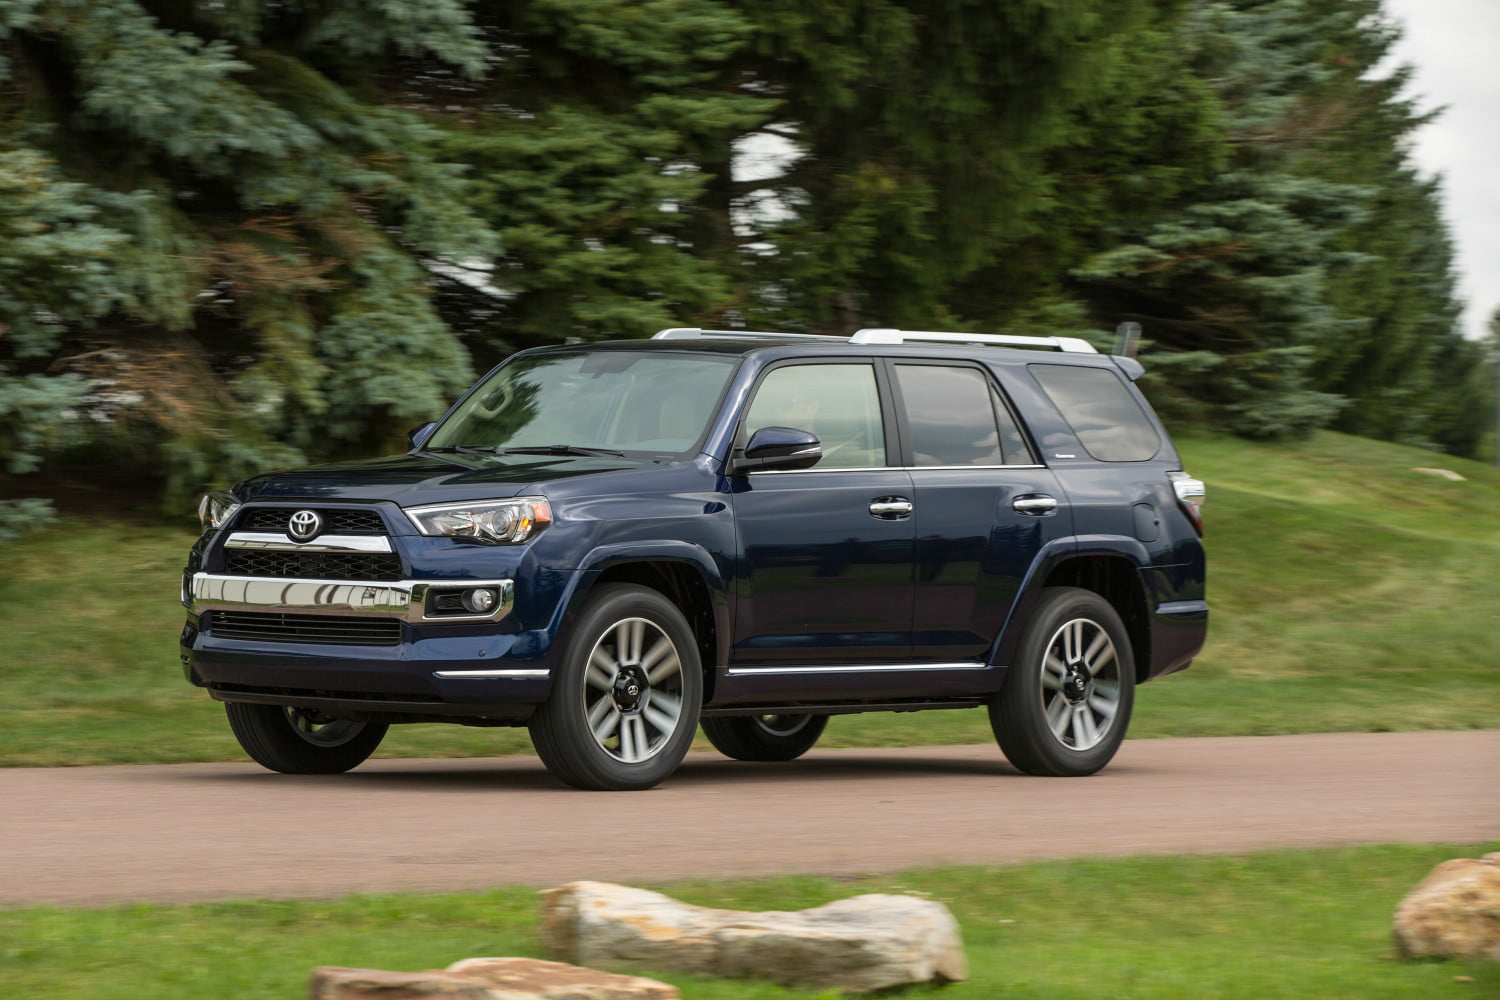 2018 toyota 4runner specs release date price performance limited 06